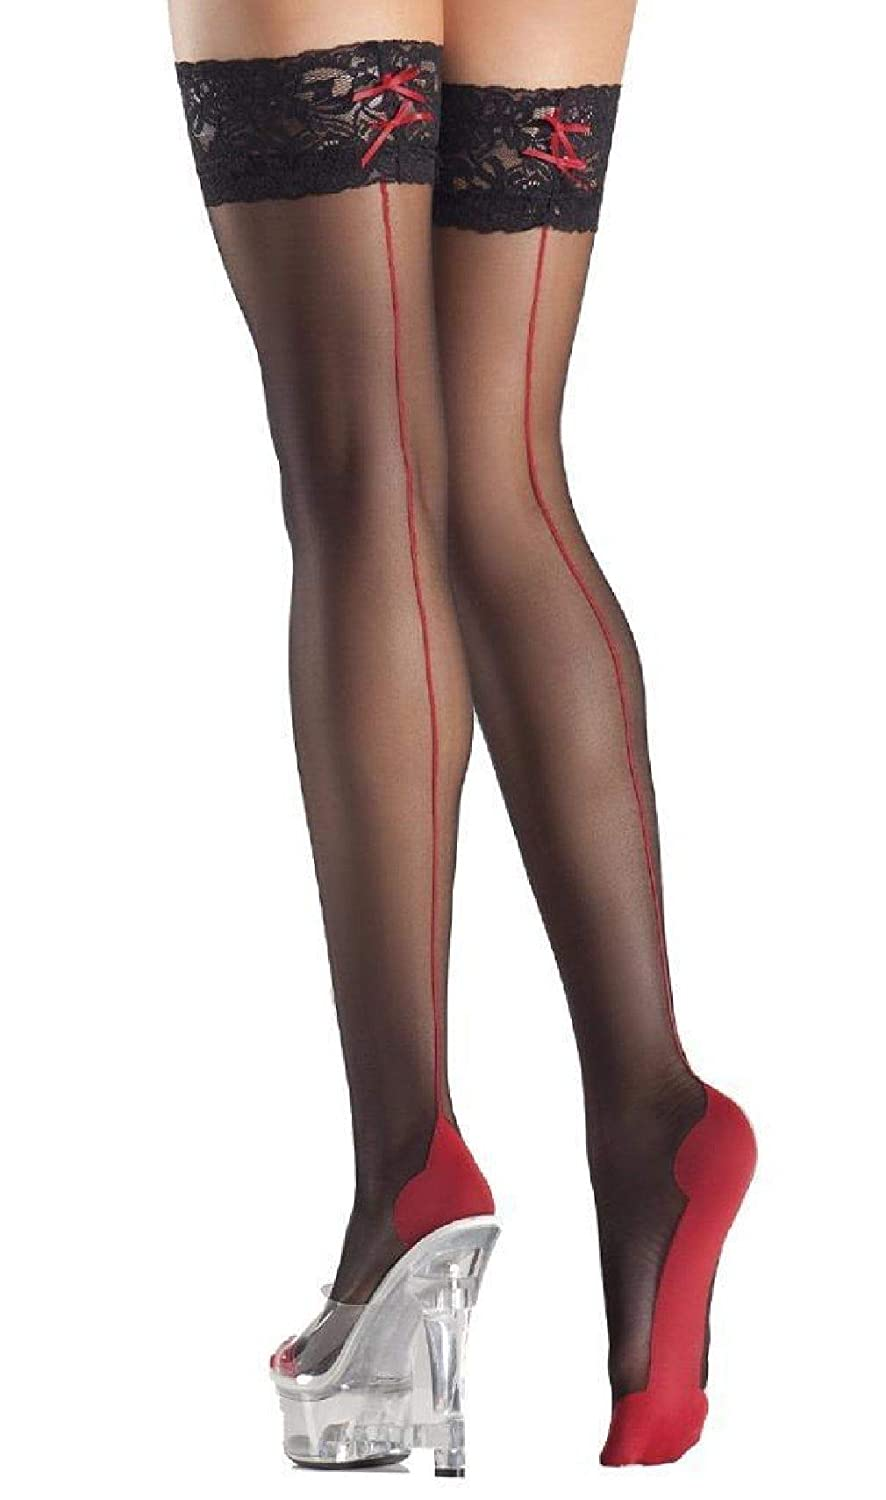 bd9071205fef0 Amazon.com: Red Cuban Foot Heel Thigh Highs Stockings Back Seam Lace ...